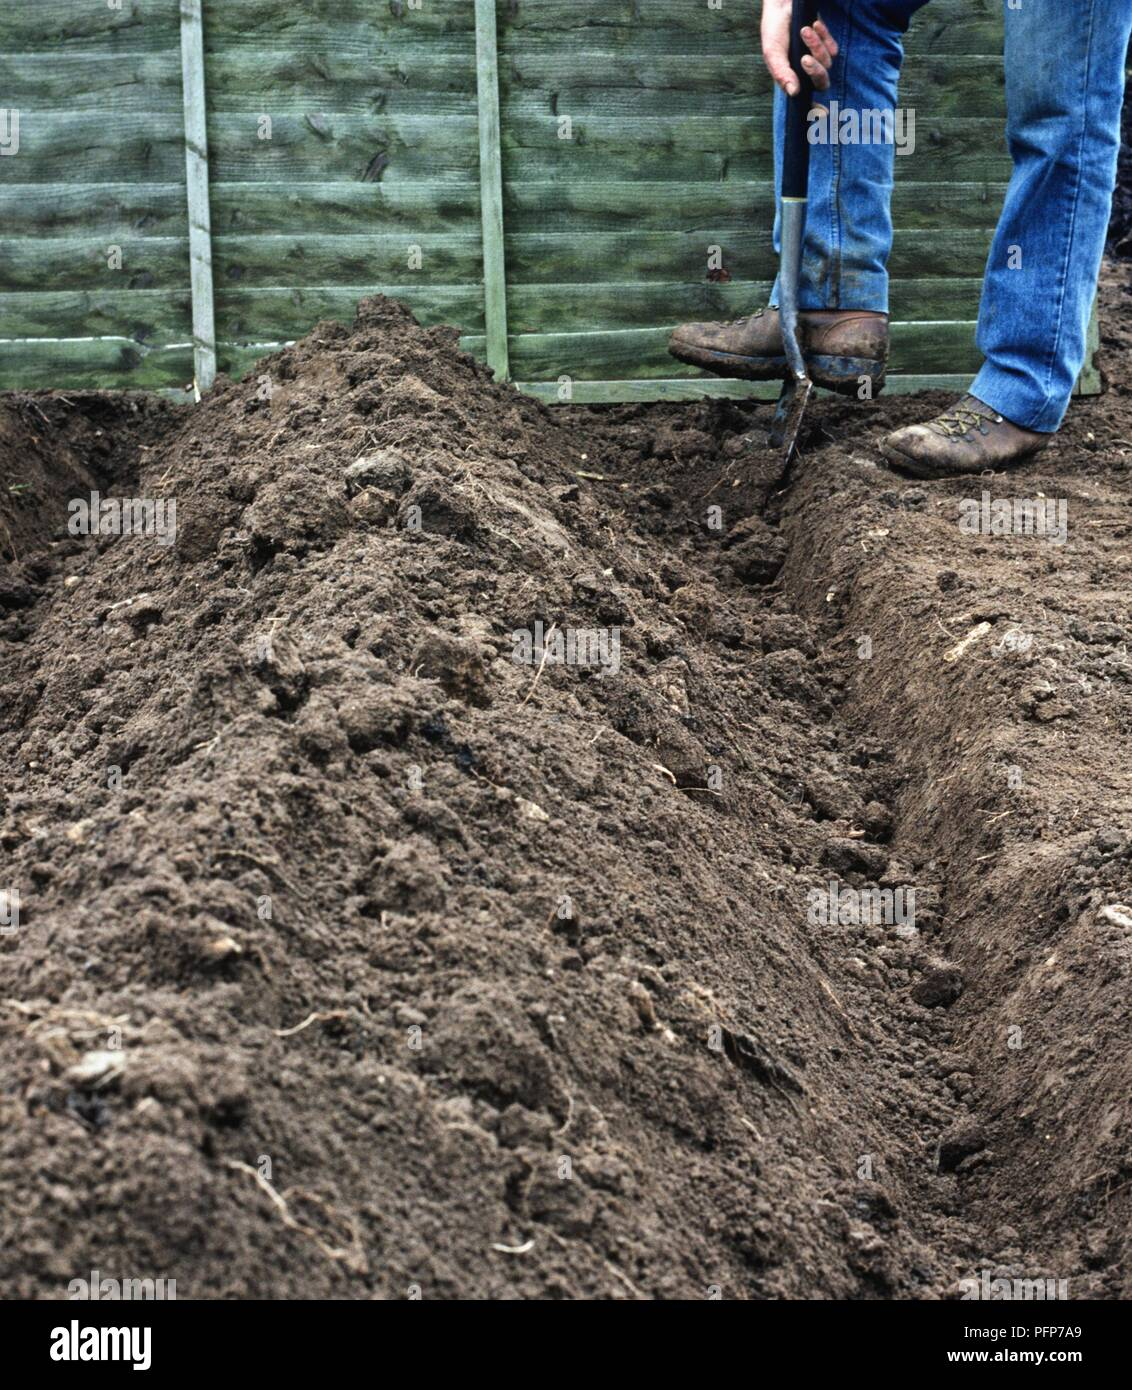 Man using spade to dig trench in vegetable garden Stock